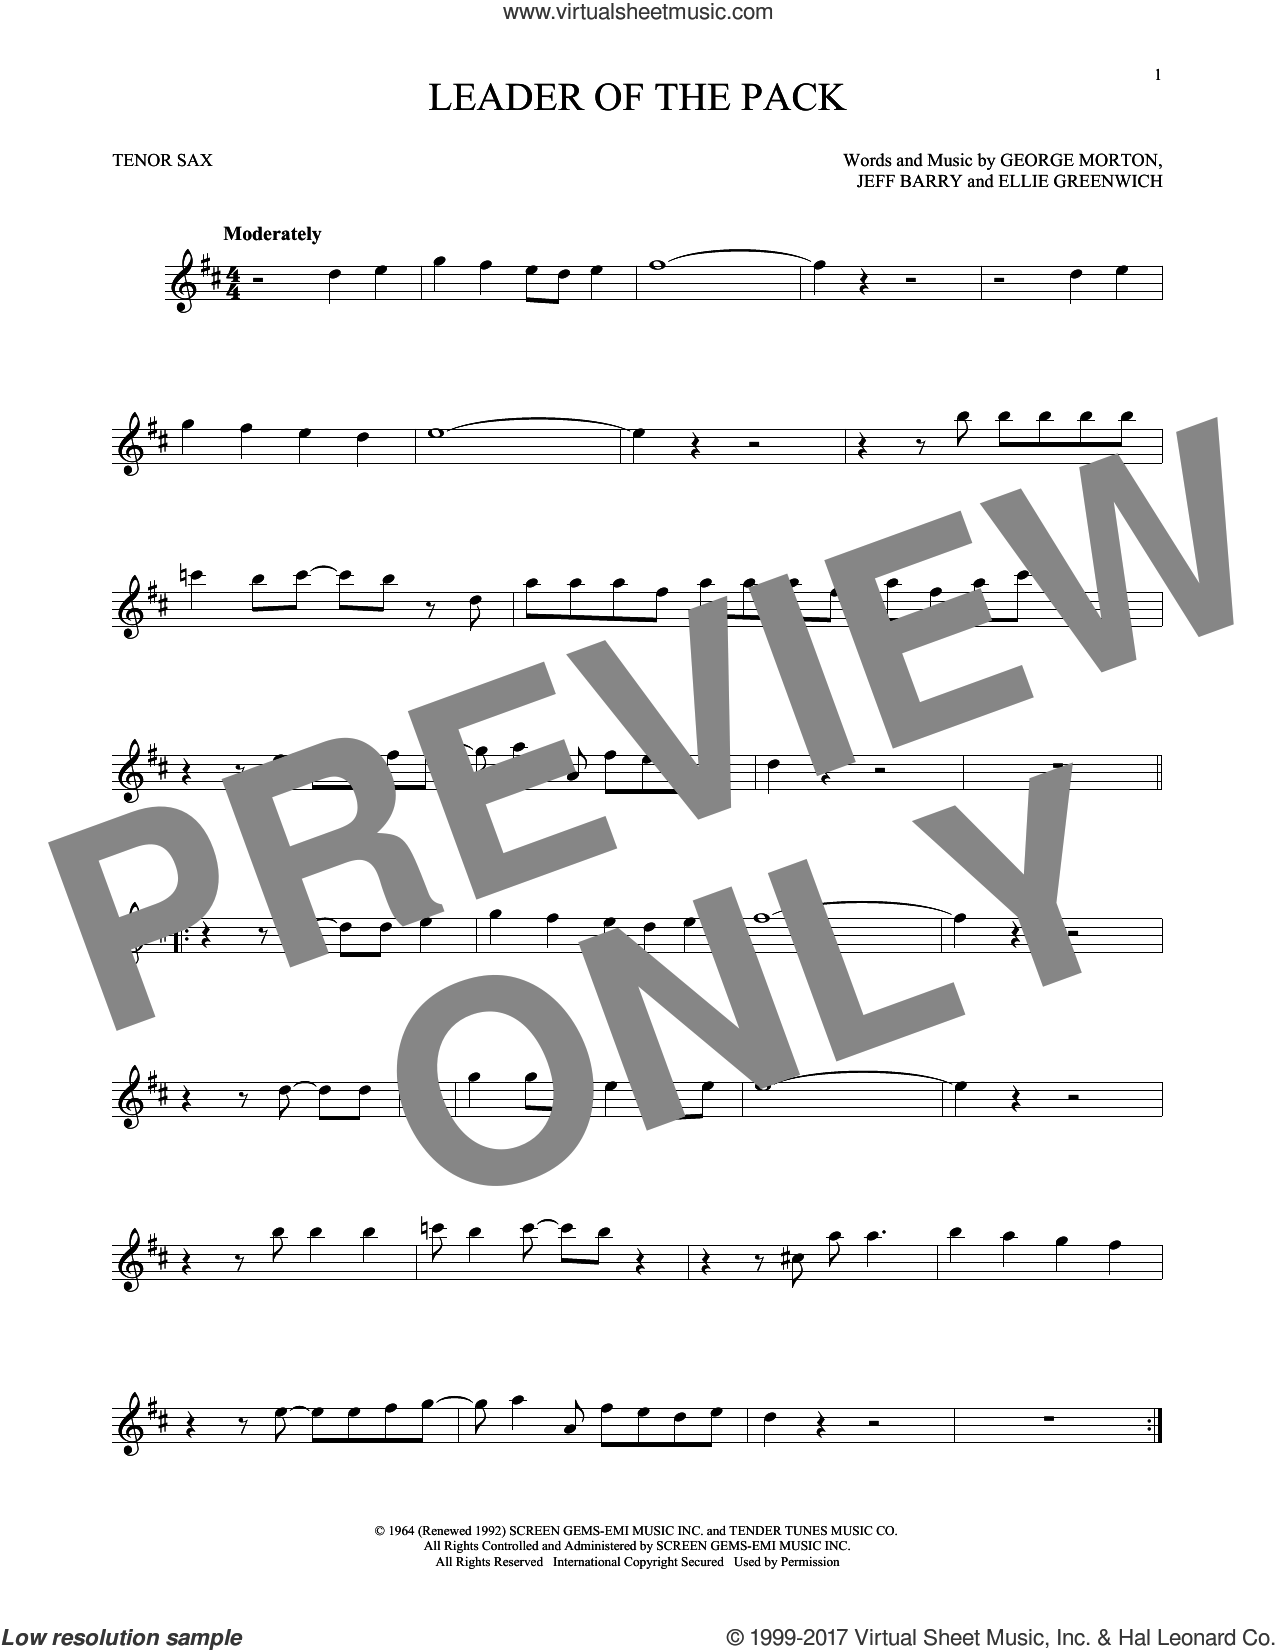 Leader Of The Pack sheet music for tenor saxophone solo by The Shangri-Las, Ellie Greenwich, George Morton and Jeff Barry, intermediate skill level